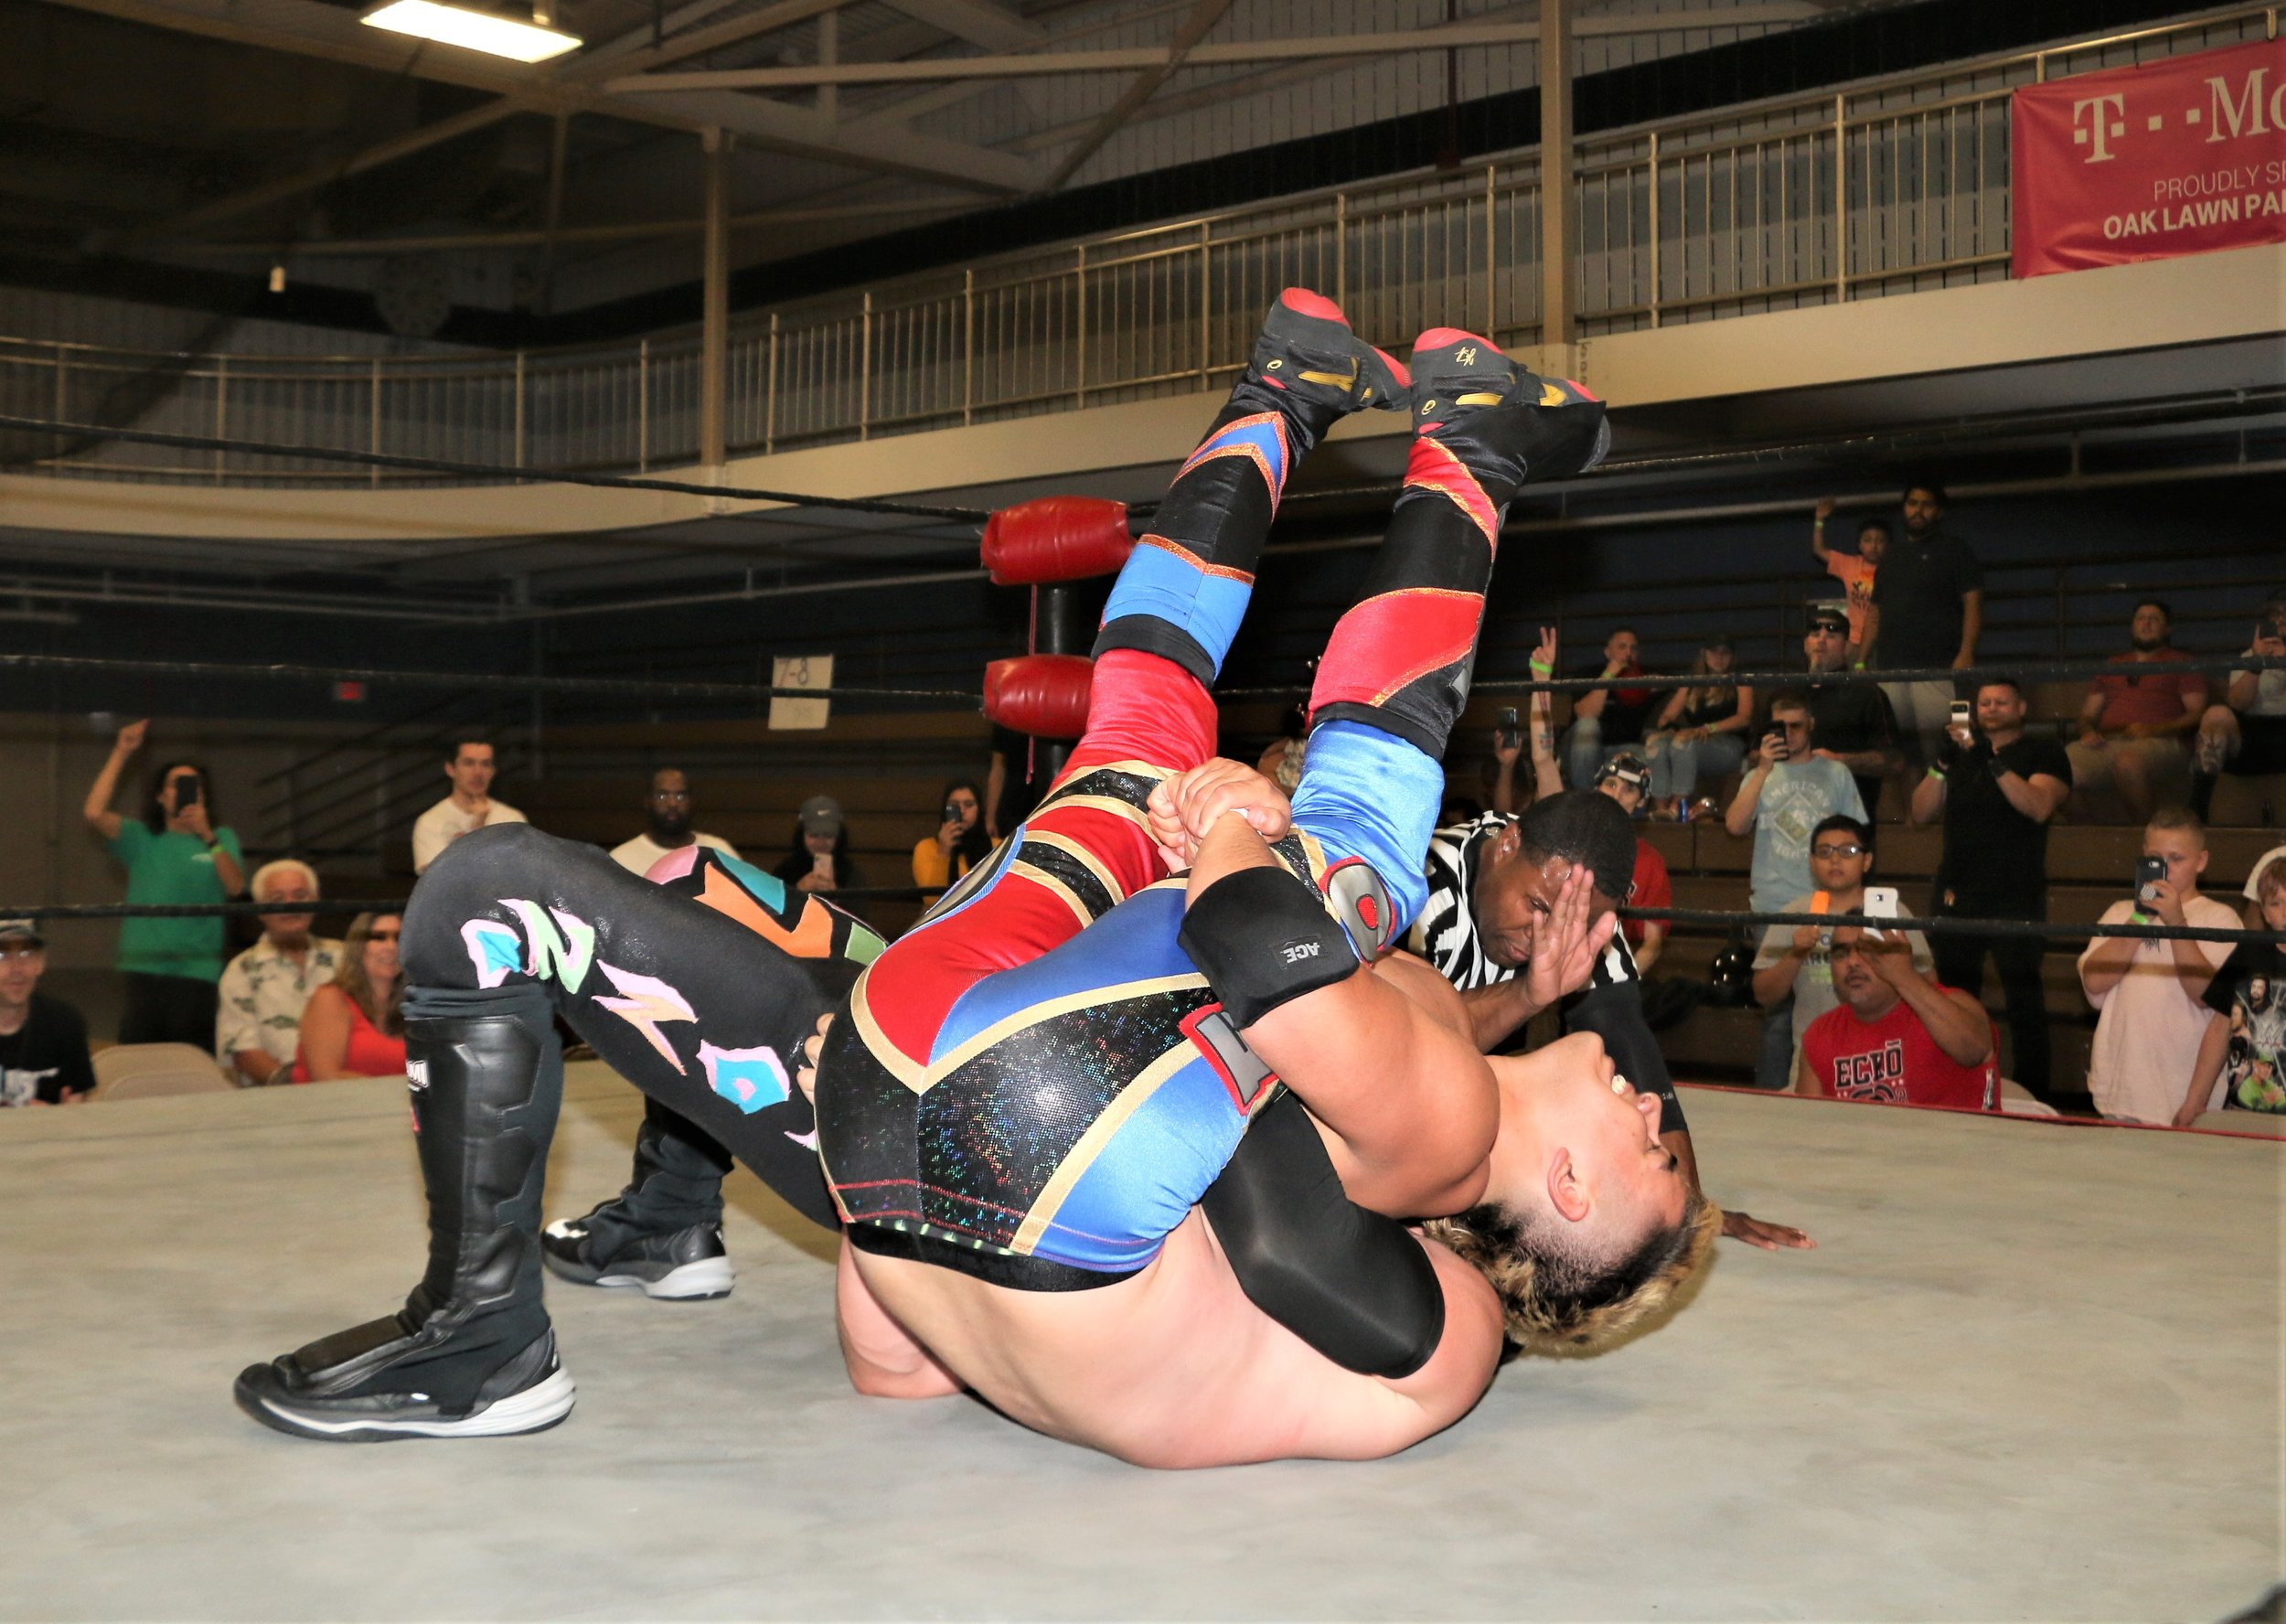 """Oak Lawn's Joe Alonzo secures the pin on Robert """"Ego"""" Anthony in the main event."""